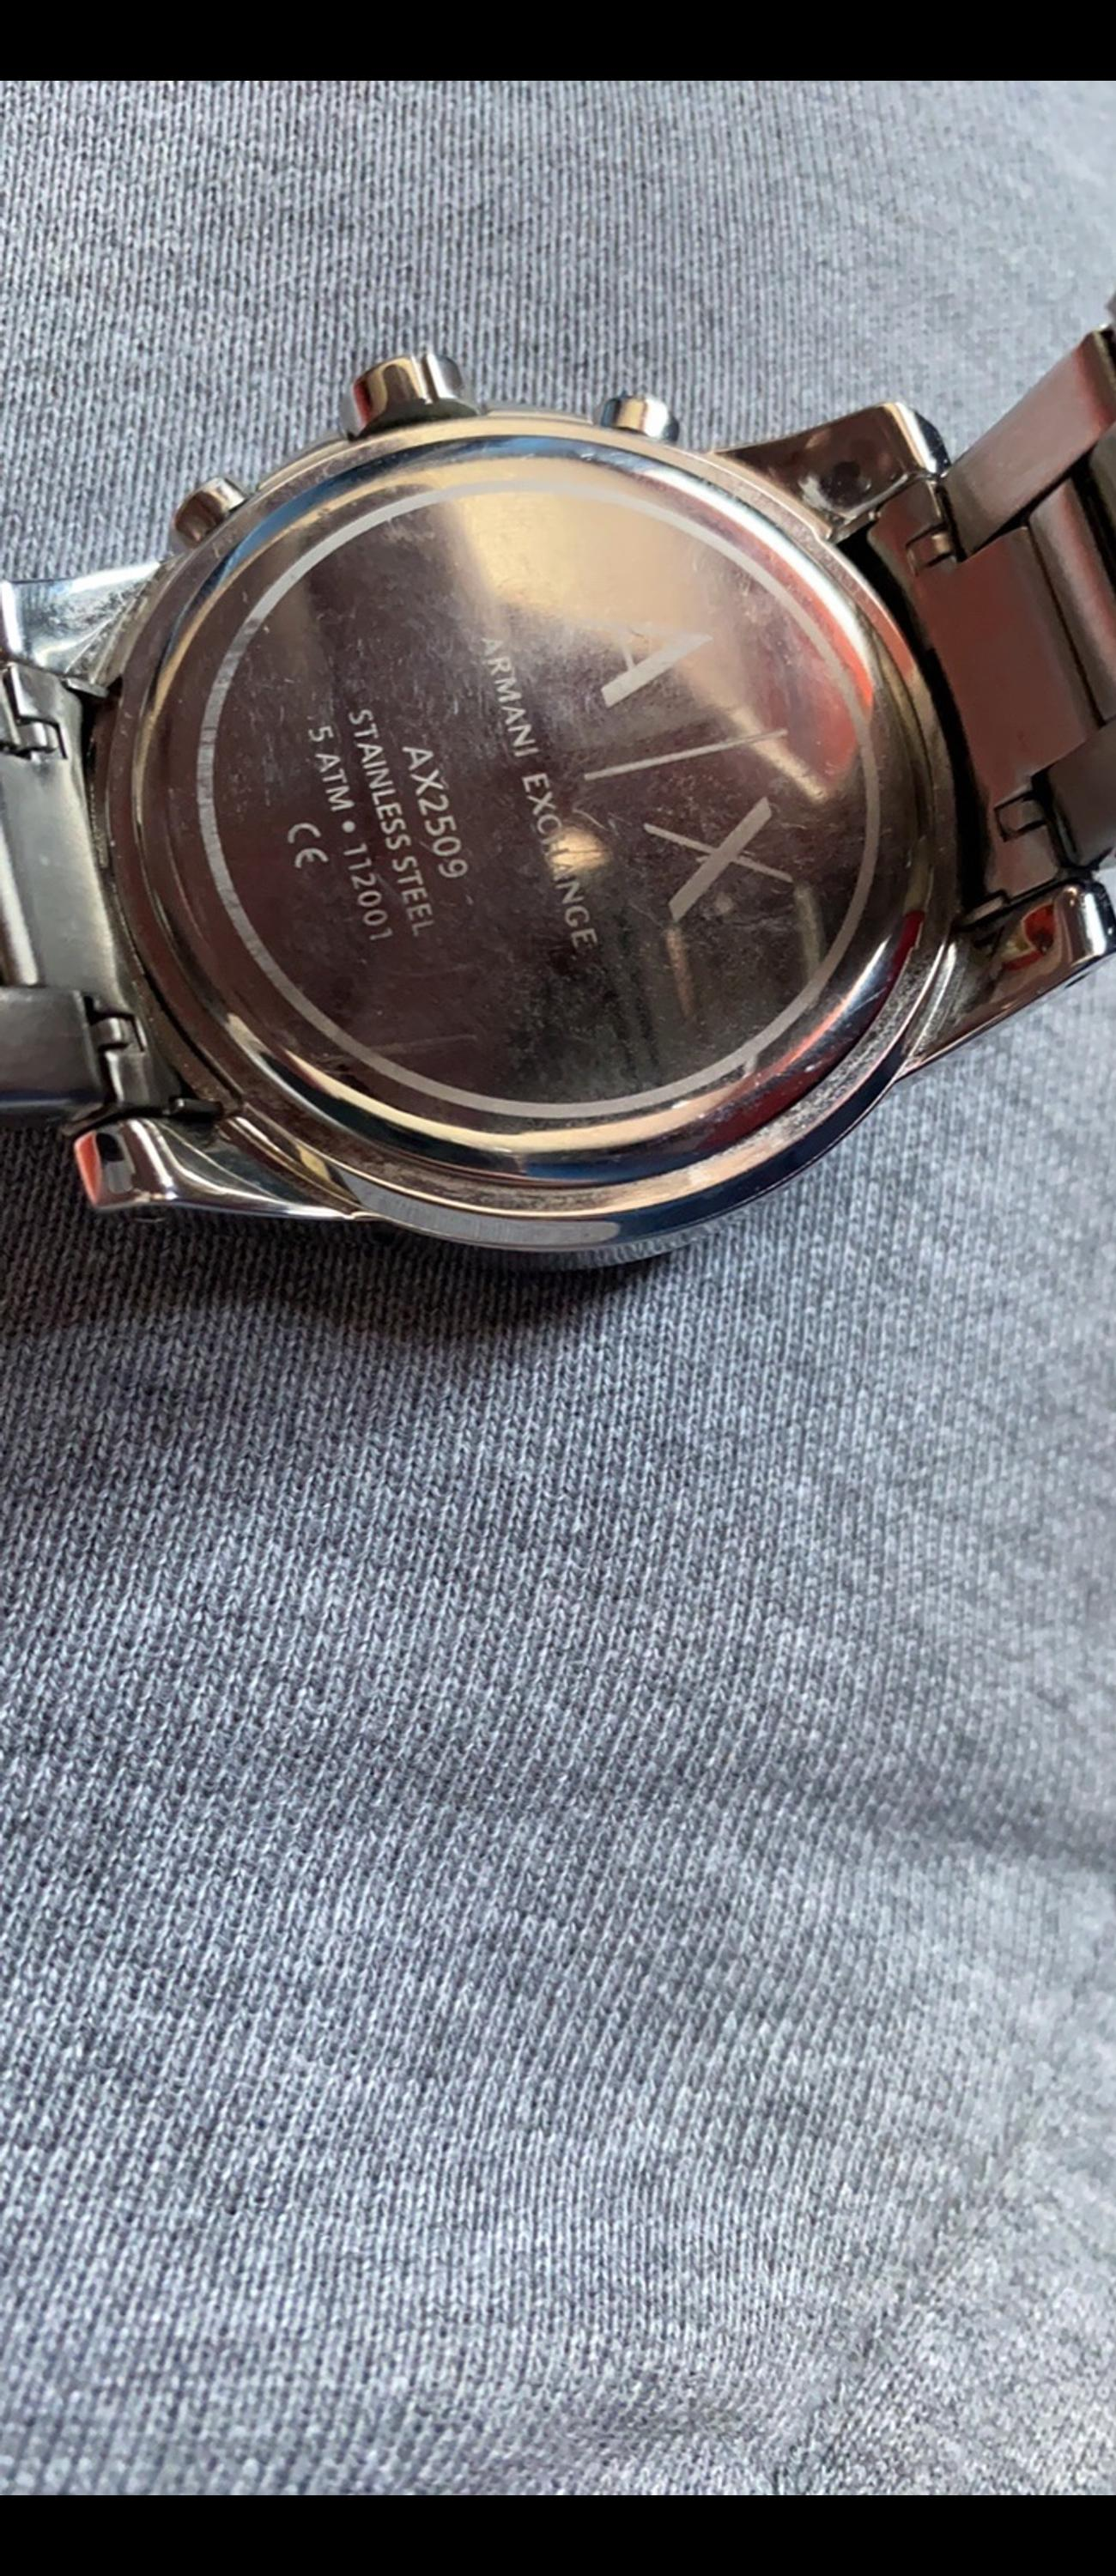 Brand new Armani watch took out box once to take pictures for sale unwanted gift receipt says it cost 180 new so would like to get like 110-130 all offers welcome as long as they arnt silly just want gone need the money